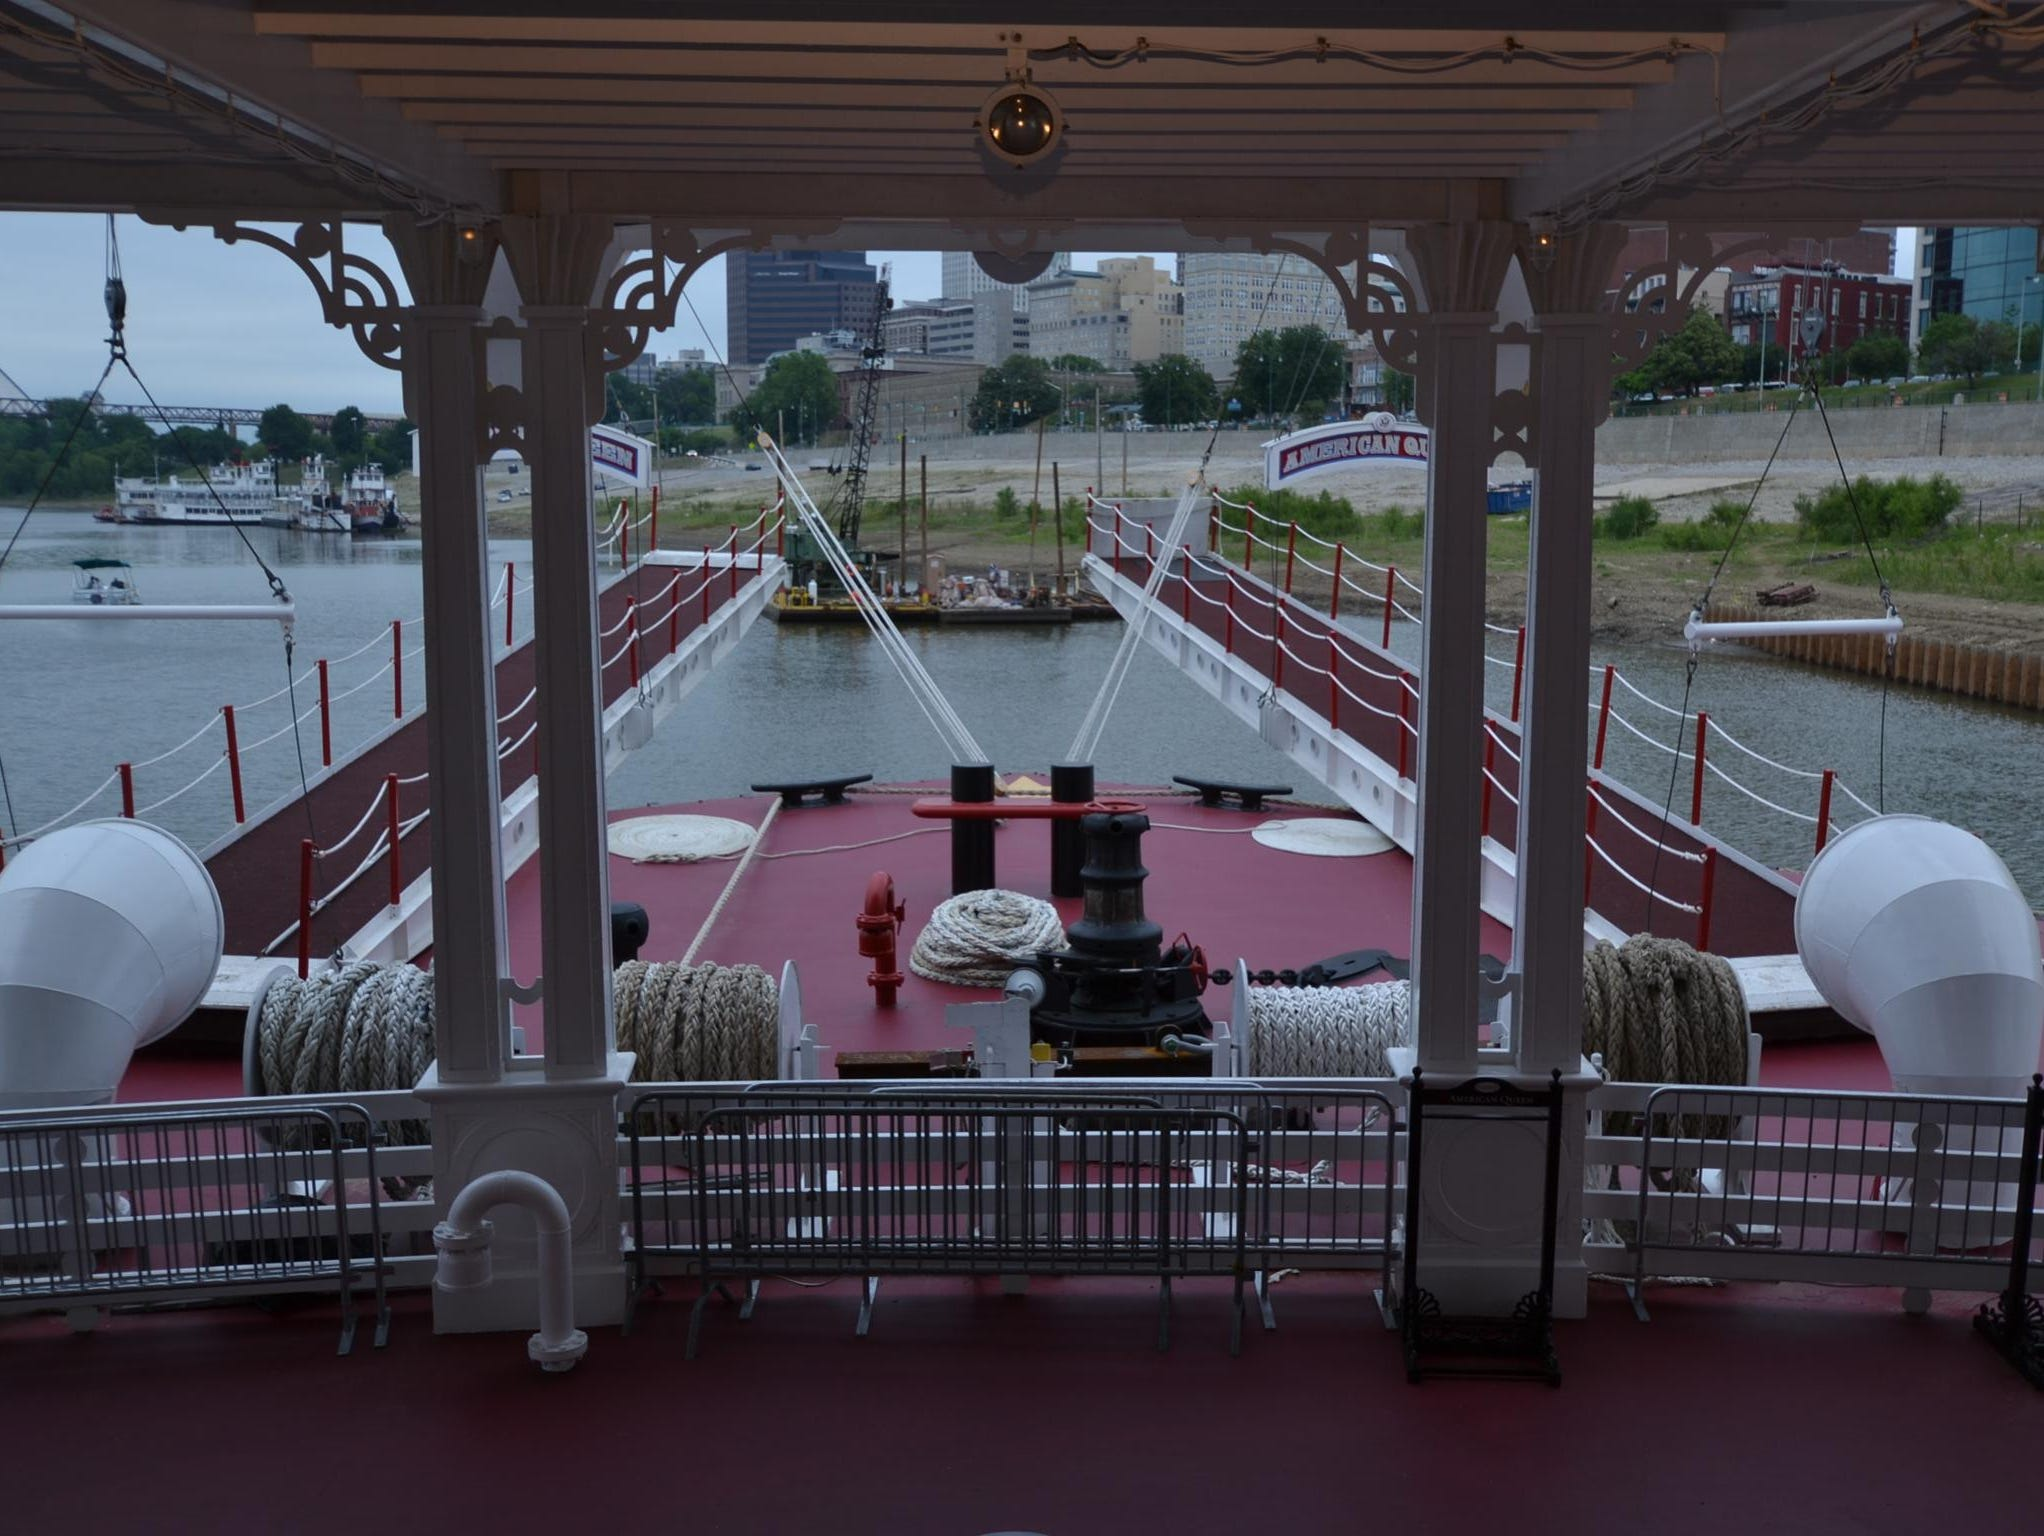 Like steamboats of old, the front of the American Queen features walkways that are designed for use during stops where a dock is not available.